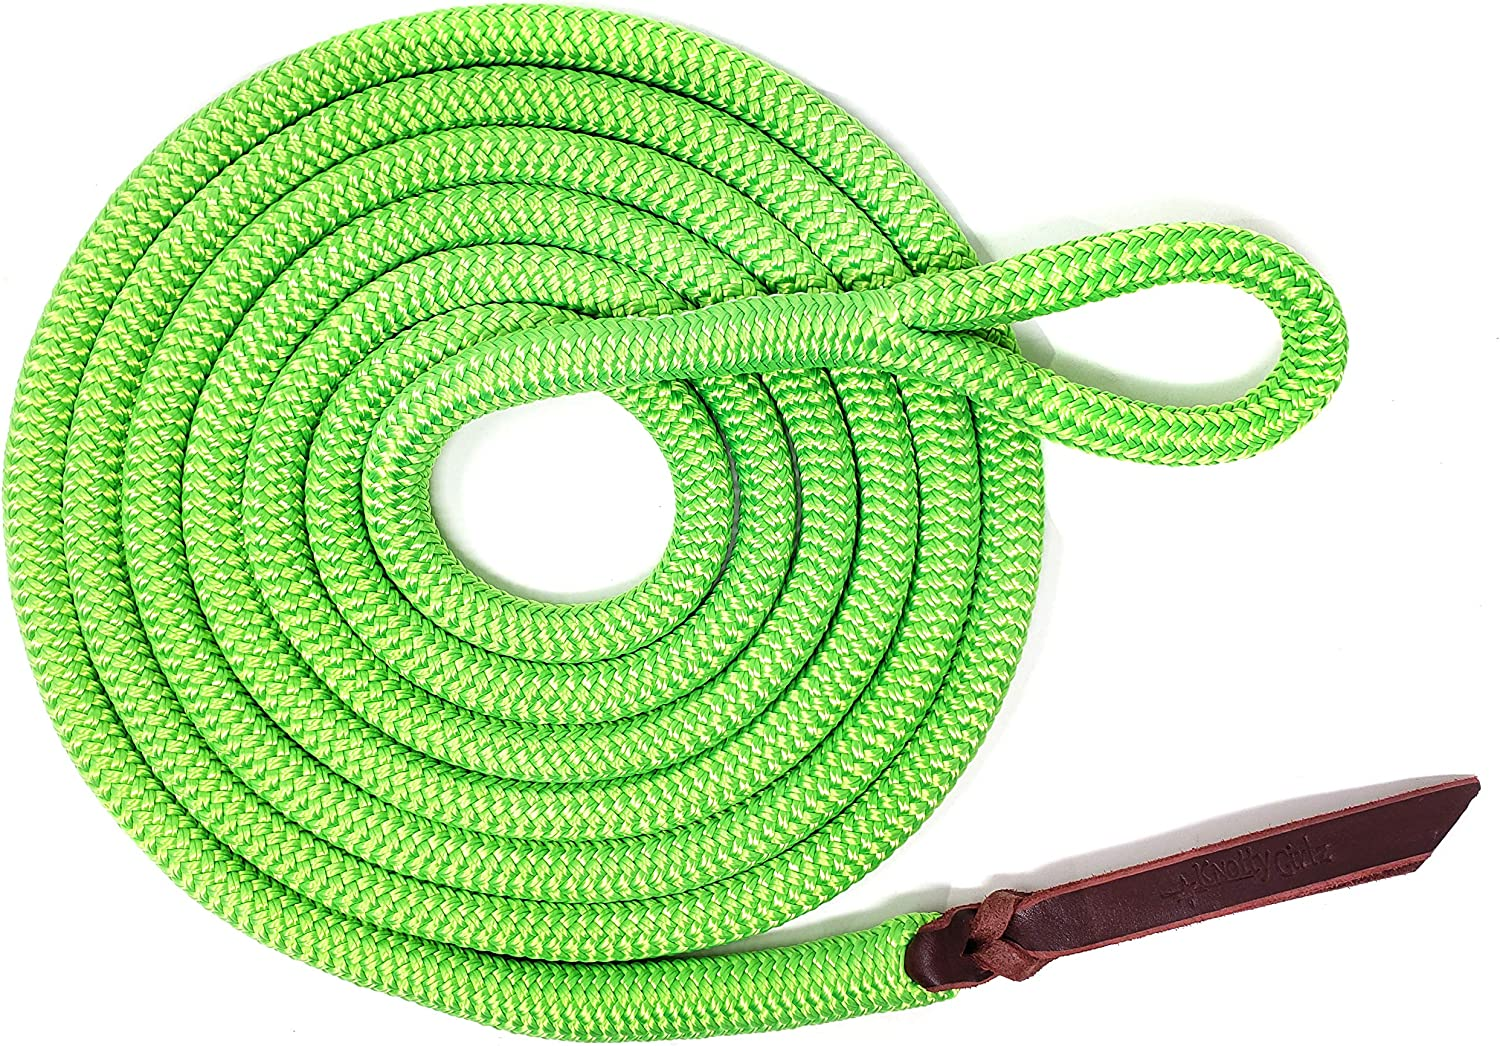 Knotty Girlz 9 16 Double Braid Lead N Popular products Rope Yacht Polyester Tampa Mall Horse